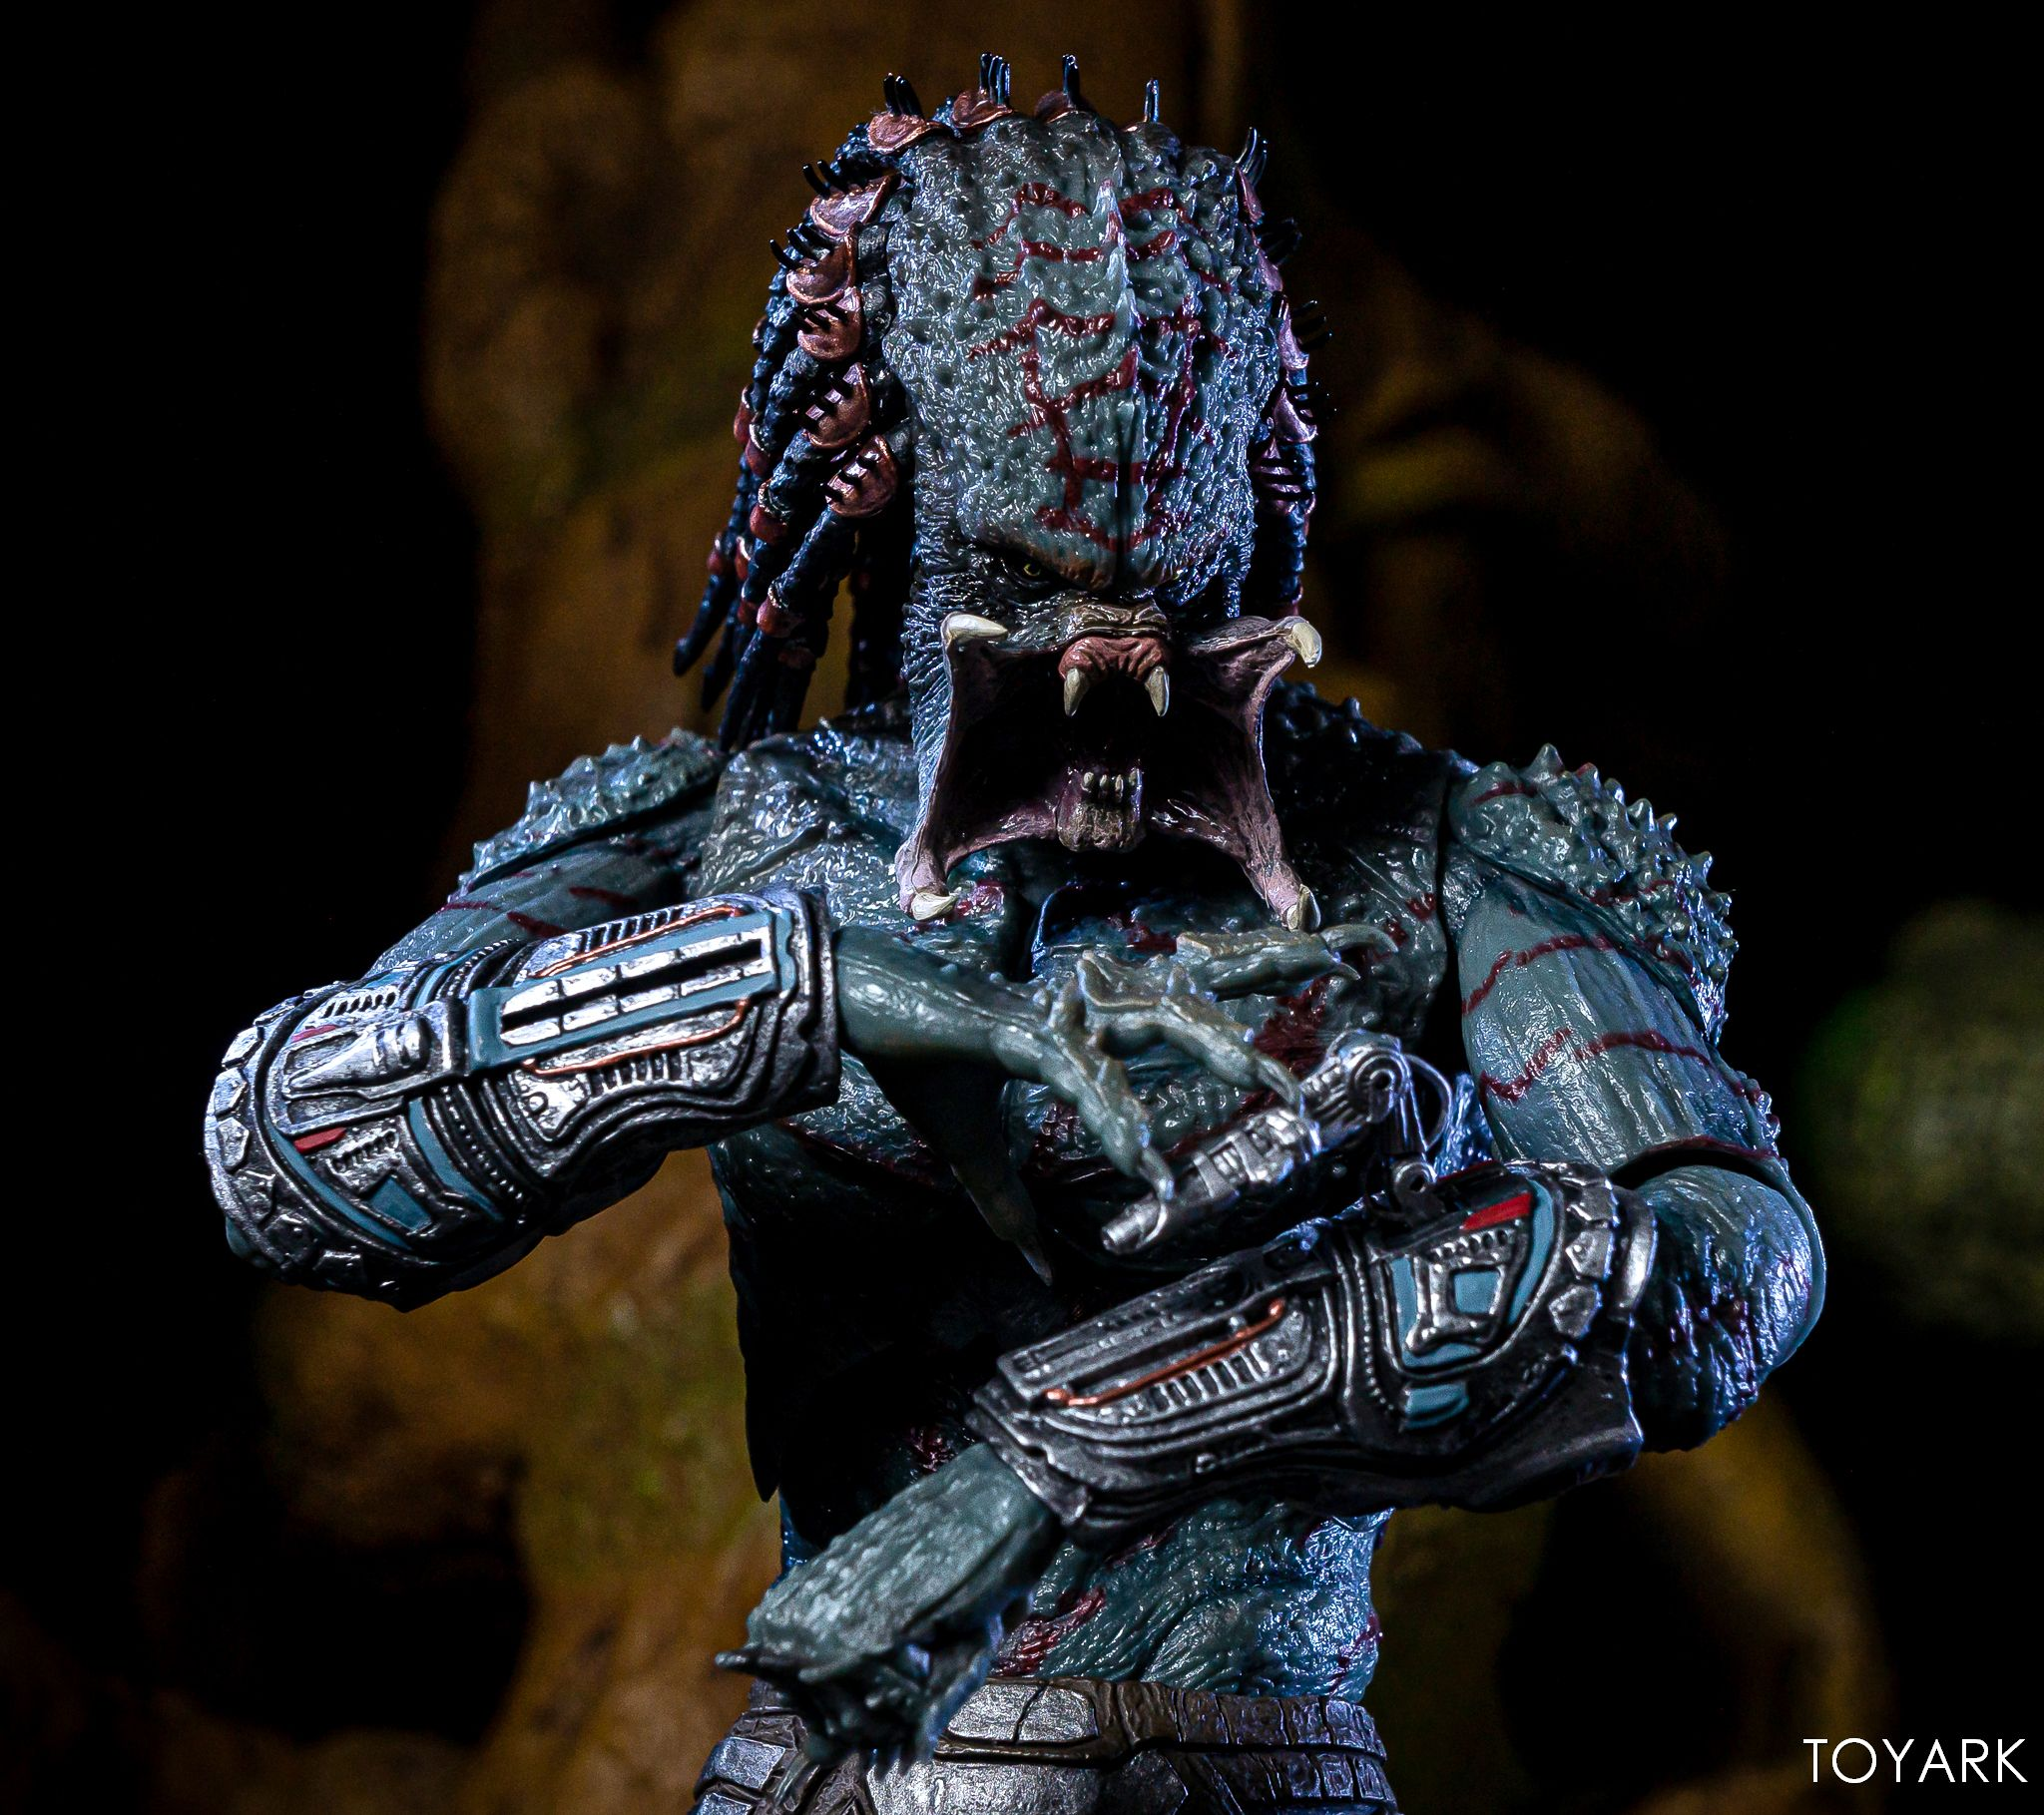 https://news.toyark.com/wp-content/uploads/sites/4/2019/05/Armored-Assassin-Predator-030.jpg